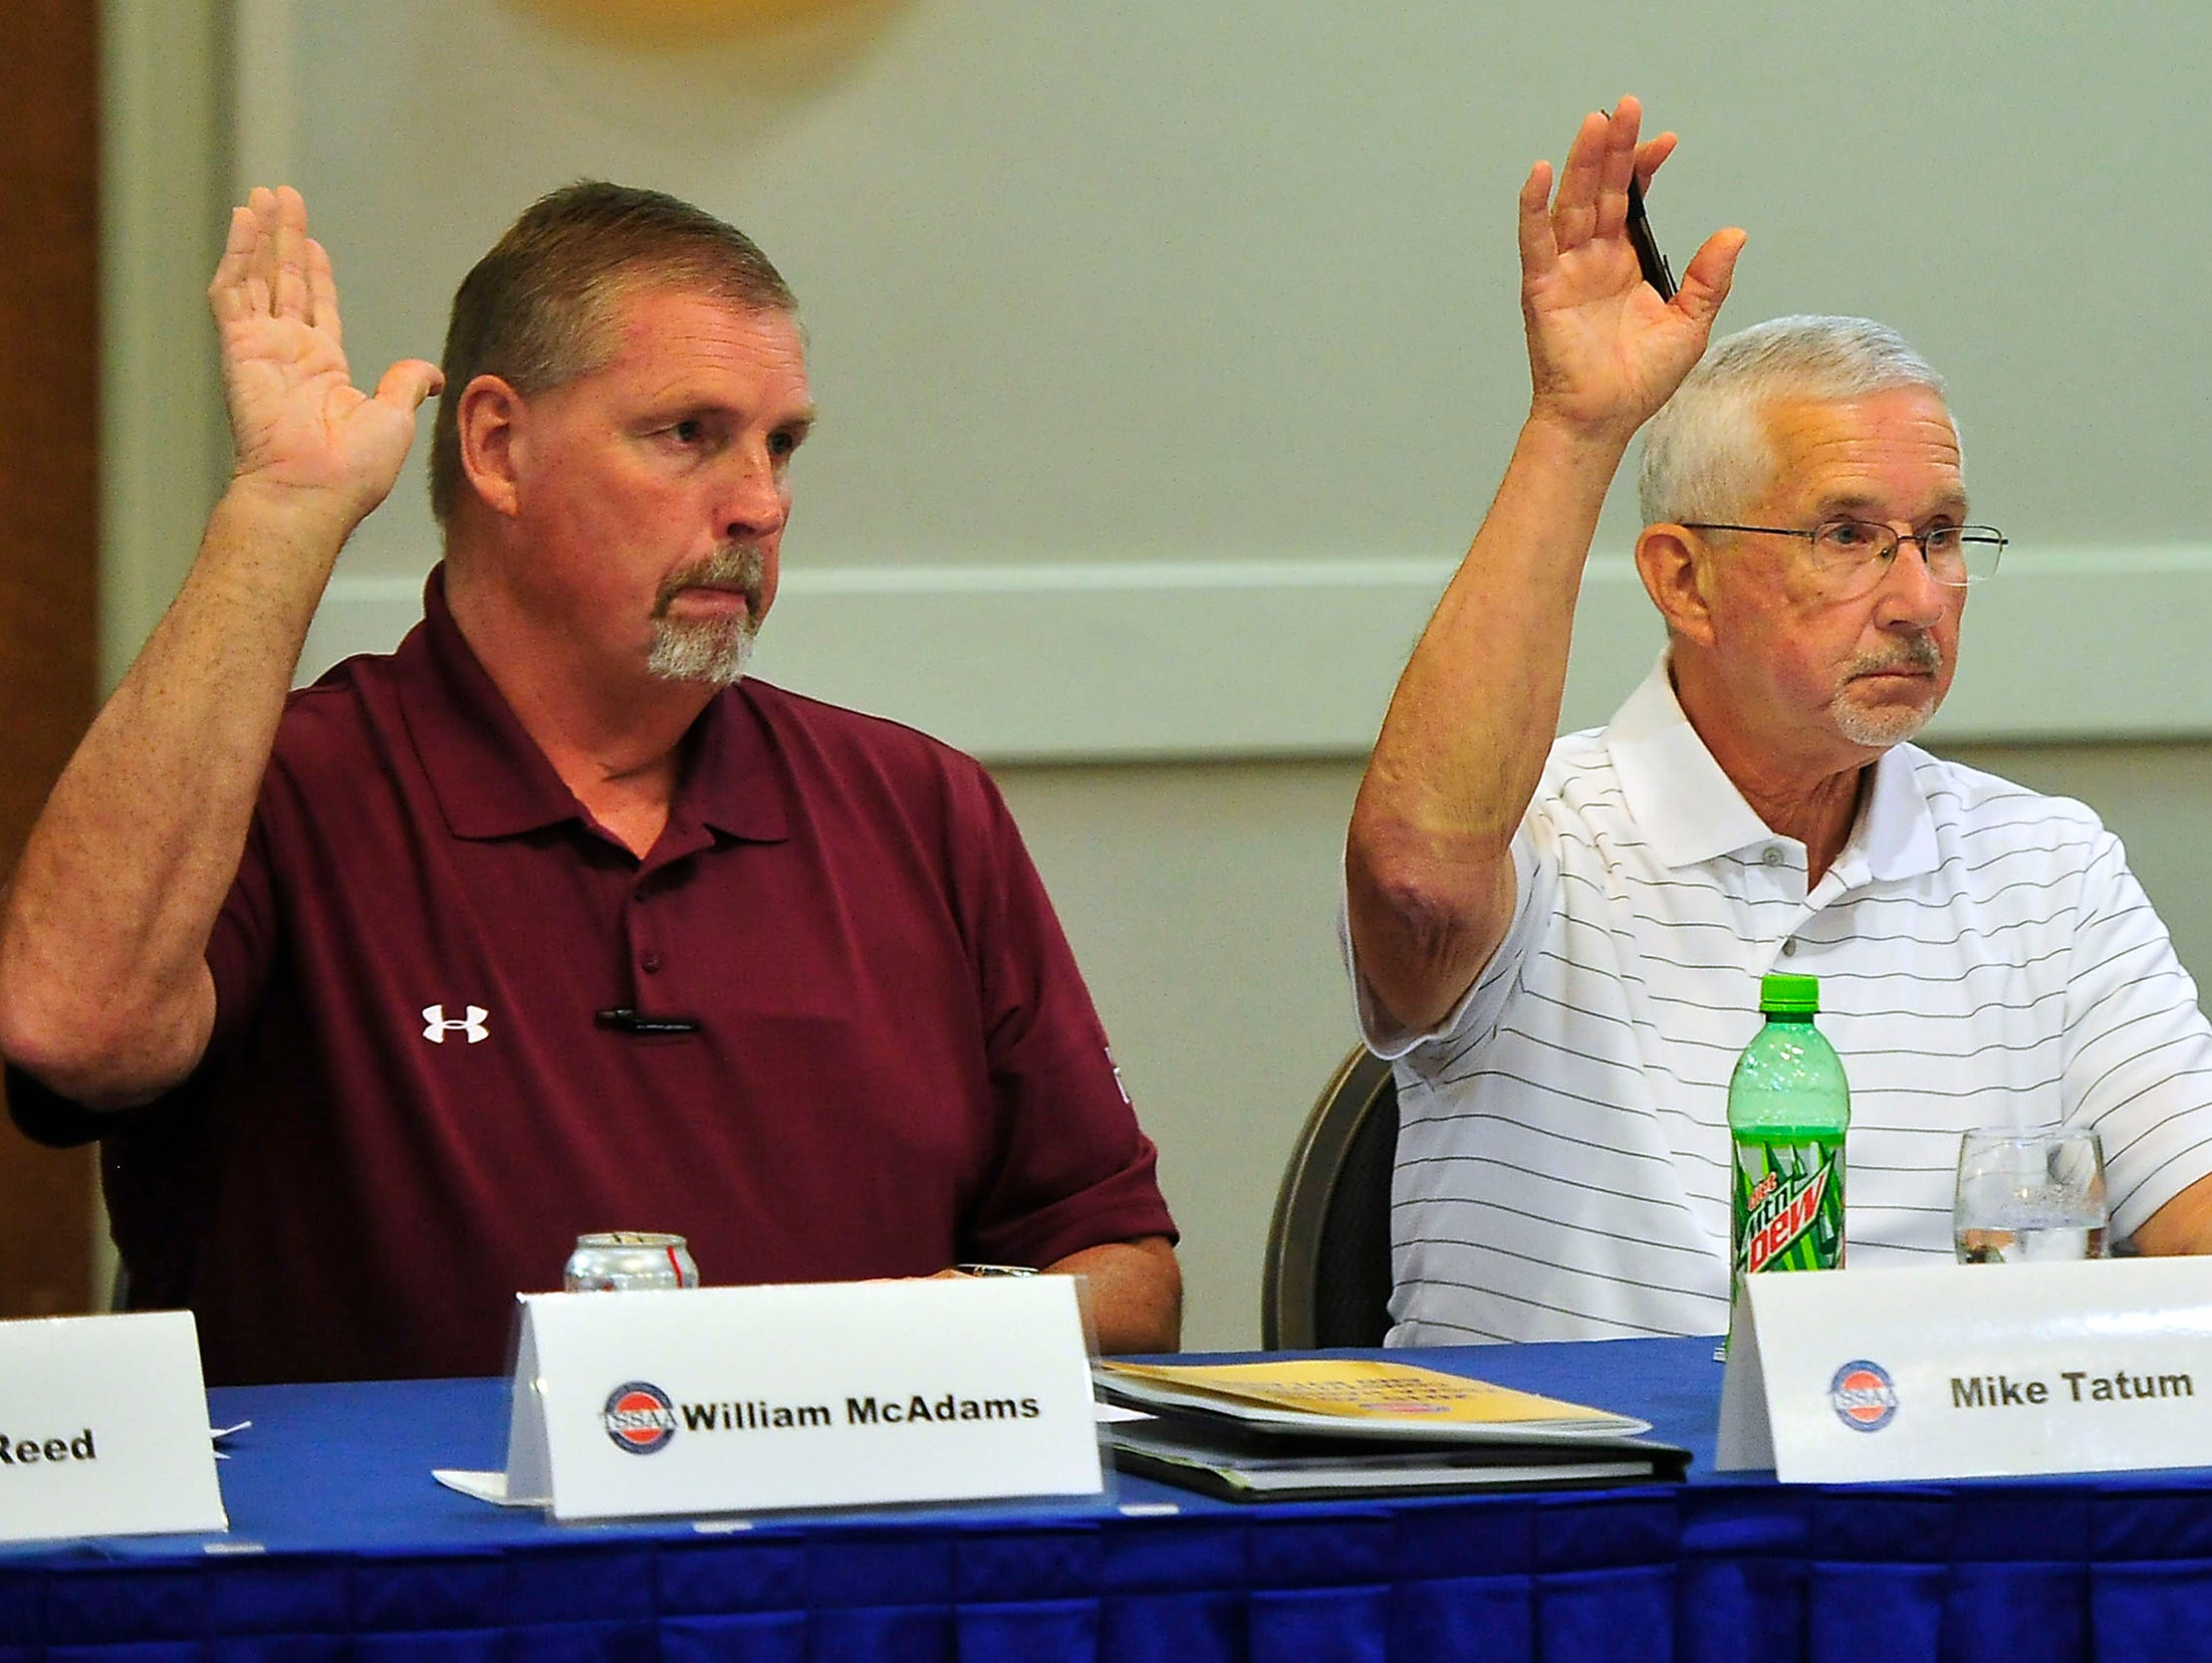 William McAdams, left, and Mike Tatum, center, vote on one of seven proposed changes as Danny Gilbert looks on during a TSSAA Legislative Council meeting at DoubleTree Hotel in Murfreesboro, Tenn., Tuesday, Sept. 1, 2015.